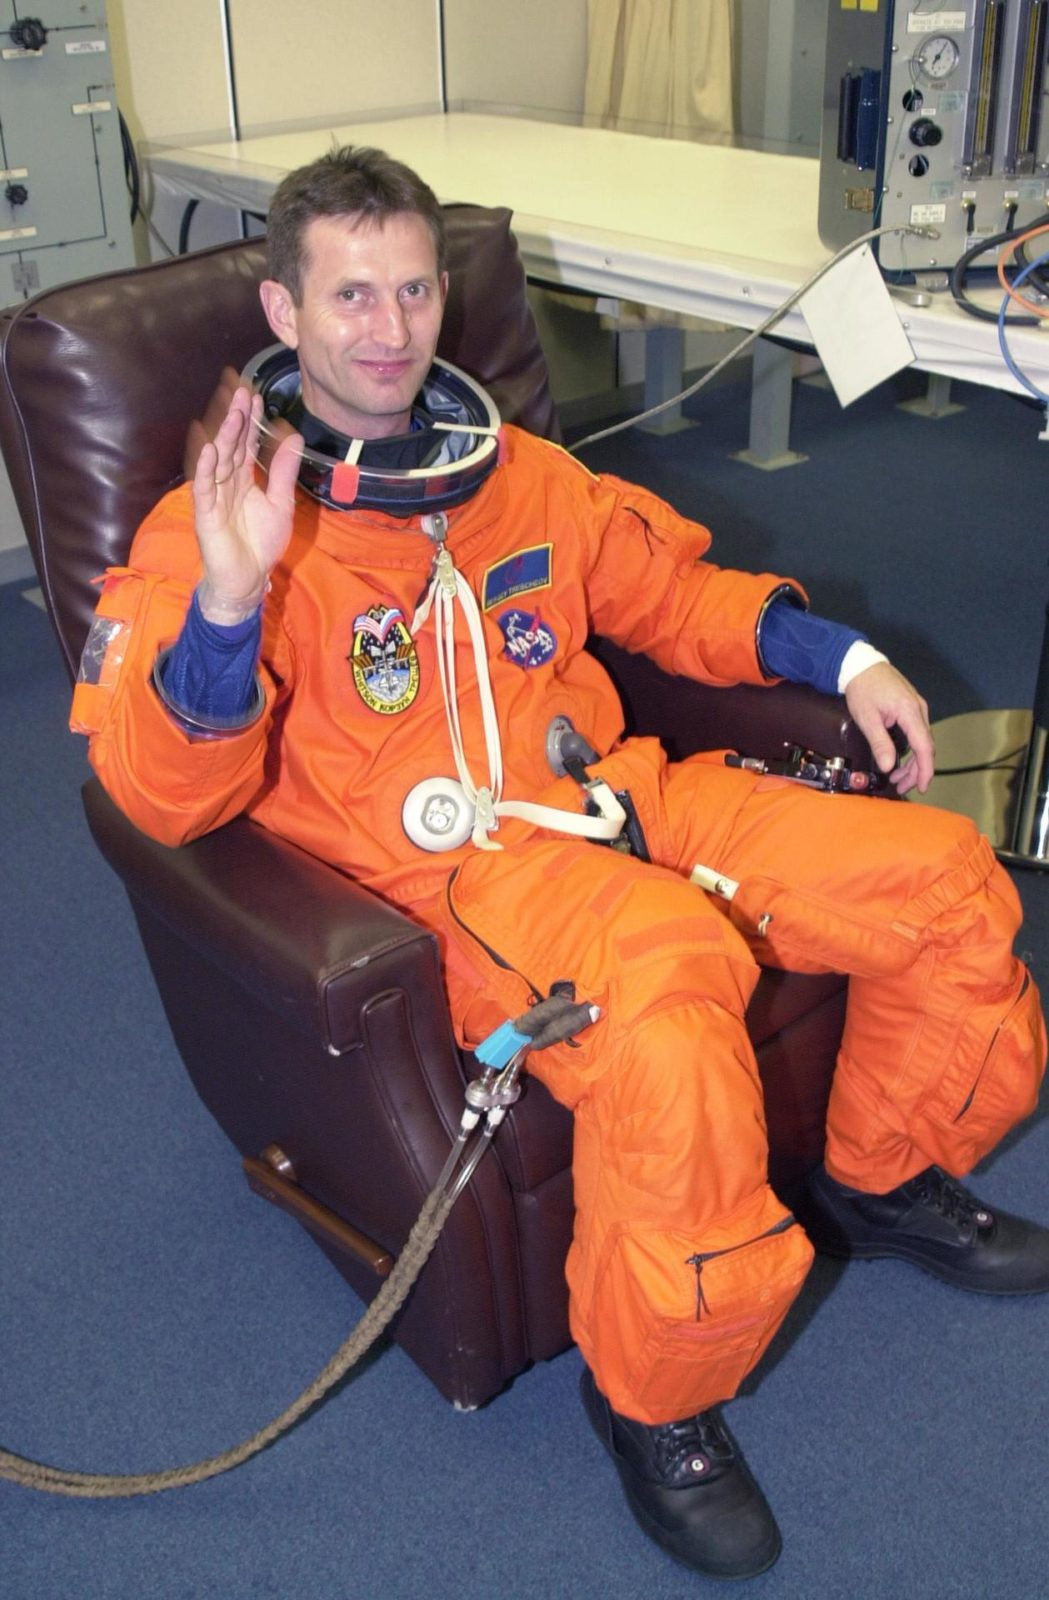 KENNEDY SPACE CENTER, FLA. --  Expedition 5 cosmonaut Sergei Treschev (RSA) waves as he dons his launch and entry suit for the scheduled liftoff of Space Shuttle Endeavour at 7:44 p.m. EDT.  This is Treschev's first Shuttle flight.  Expedition 5 is traveling on mission STS-111 to the International Space Station to replace the current resident crew, Expedition 4.  STS-111 is the second Utilization Flight to the International Space Station, carrying the Multi-Purpose Logistics Module Leonardo, the Mobile Base System (MBS), and a replacement wrist/roll joint for the Canadarm 2. The MBS will be installed on the Mobile Transporter to complete the Canadian Mobile Servicing System, or MSS. Expedition 4 crew members will return to Earth with the STS-111 crew on Endeavour. KSC-02pd0831